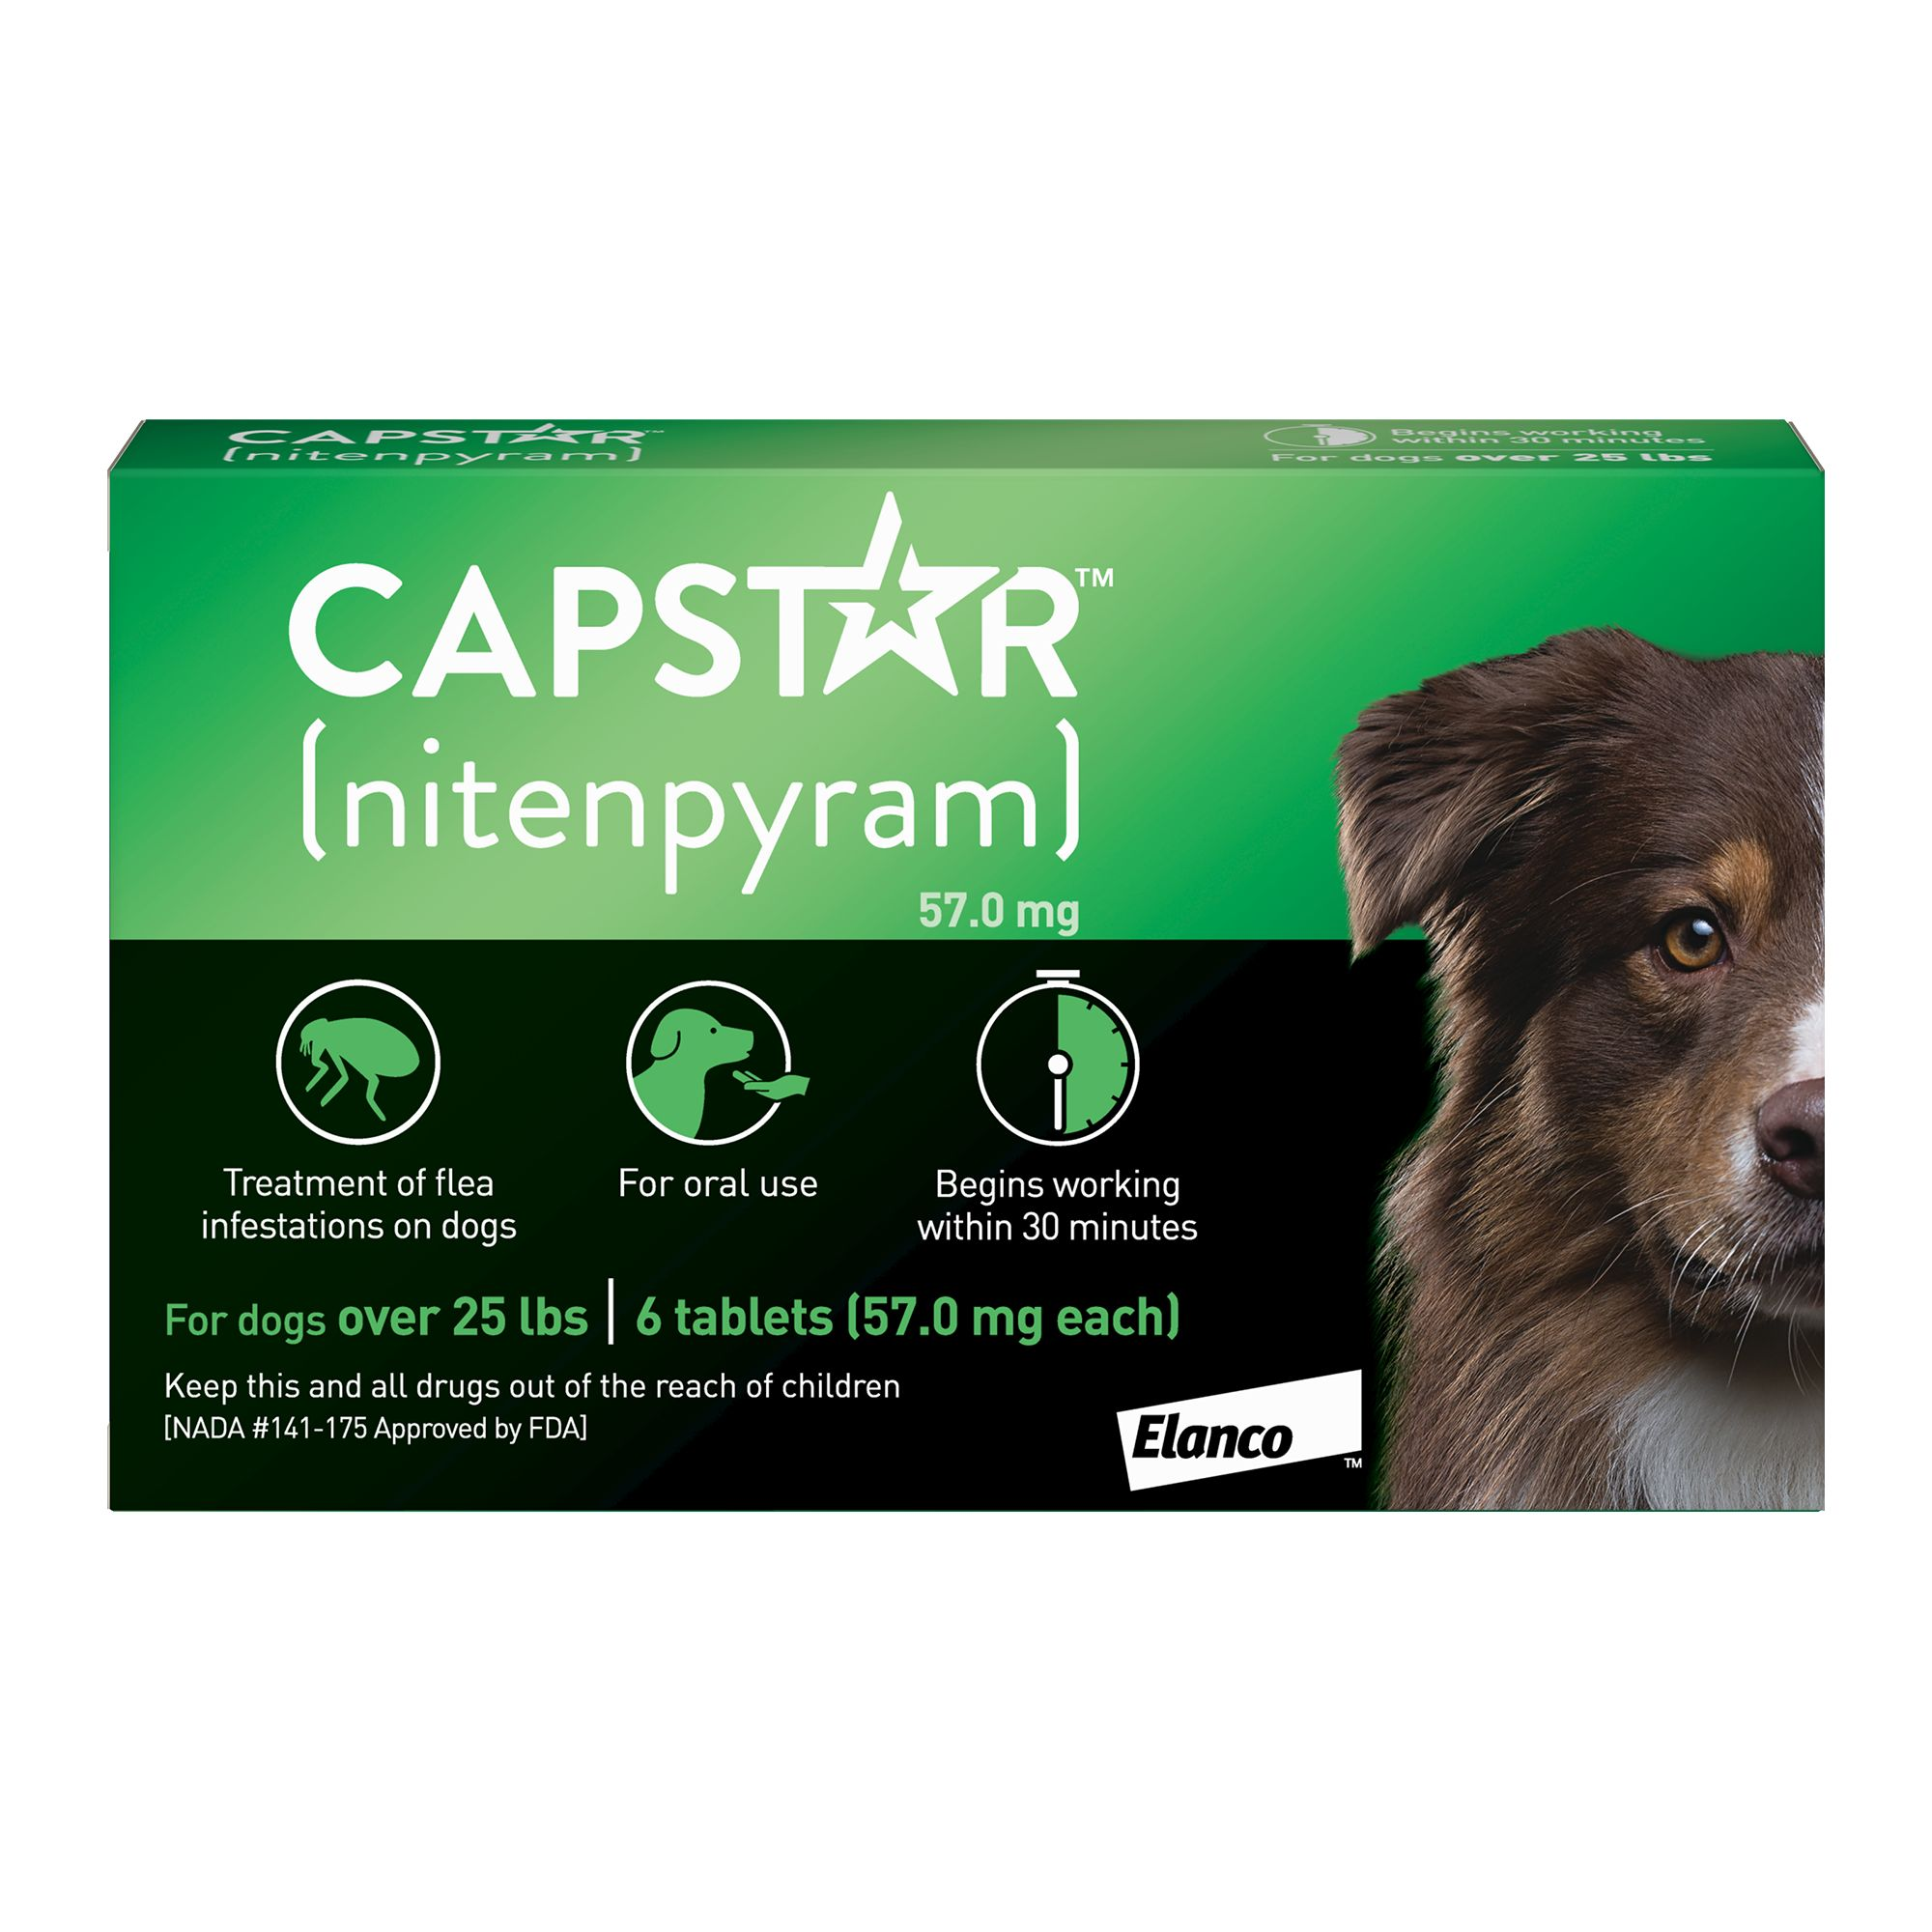 Capstar Over 25 Lb Dog Flea Treatment